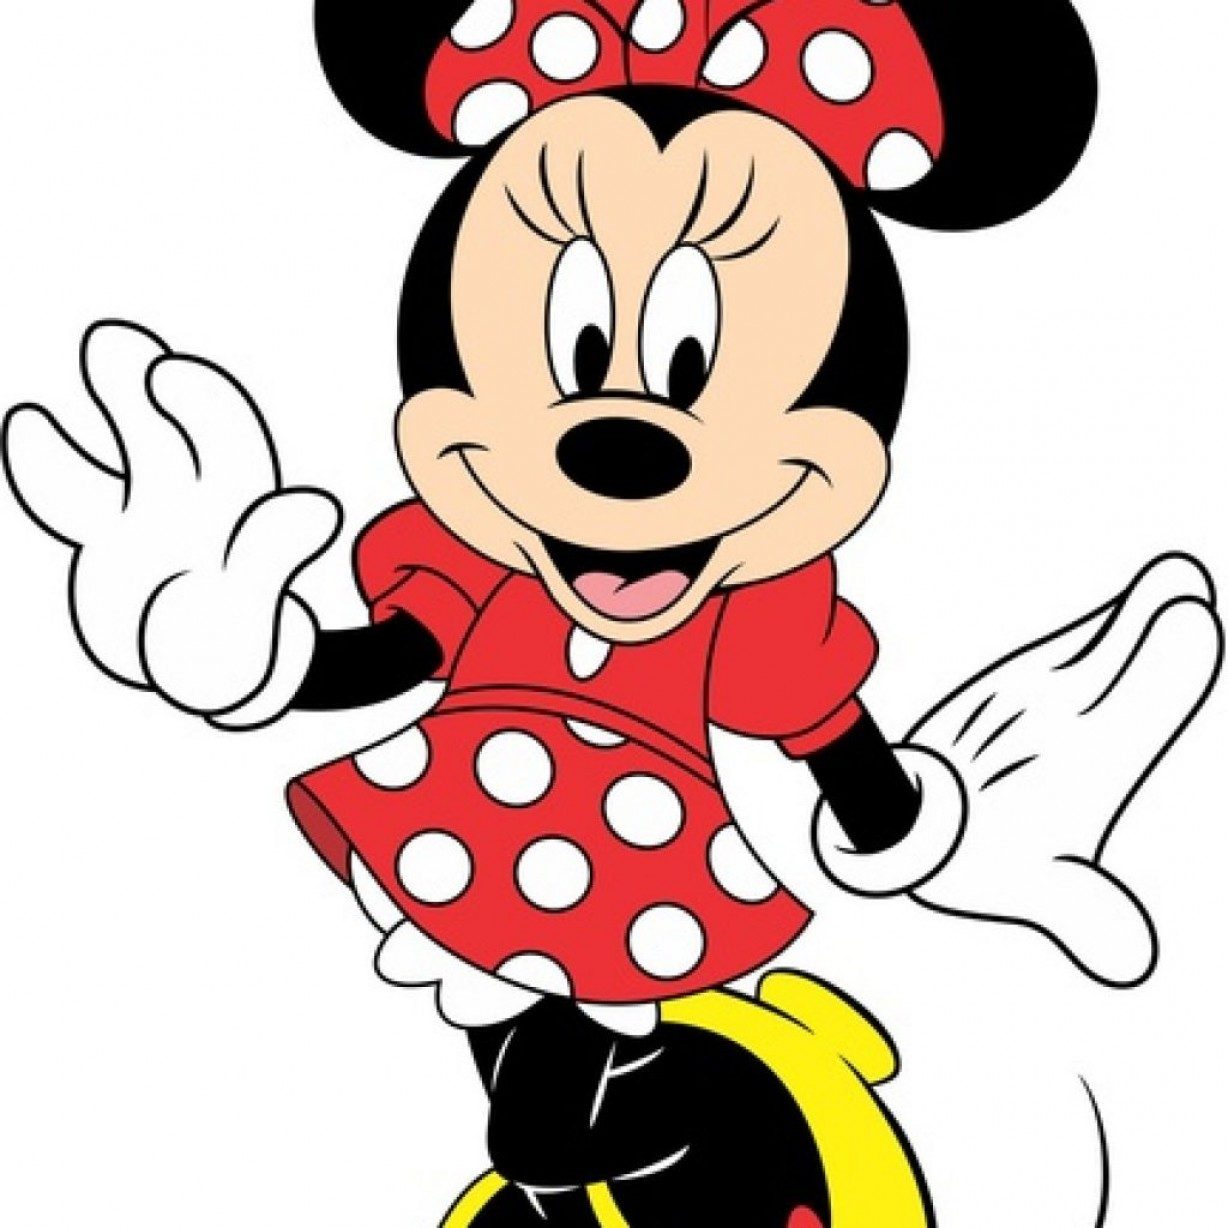 Minnie Mouse Vector Clip Art: Minnie Mouse Images Free Volleyball Clipart